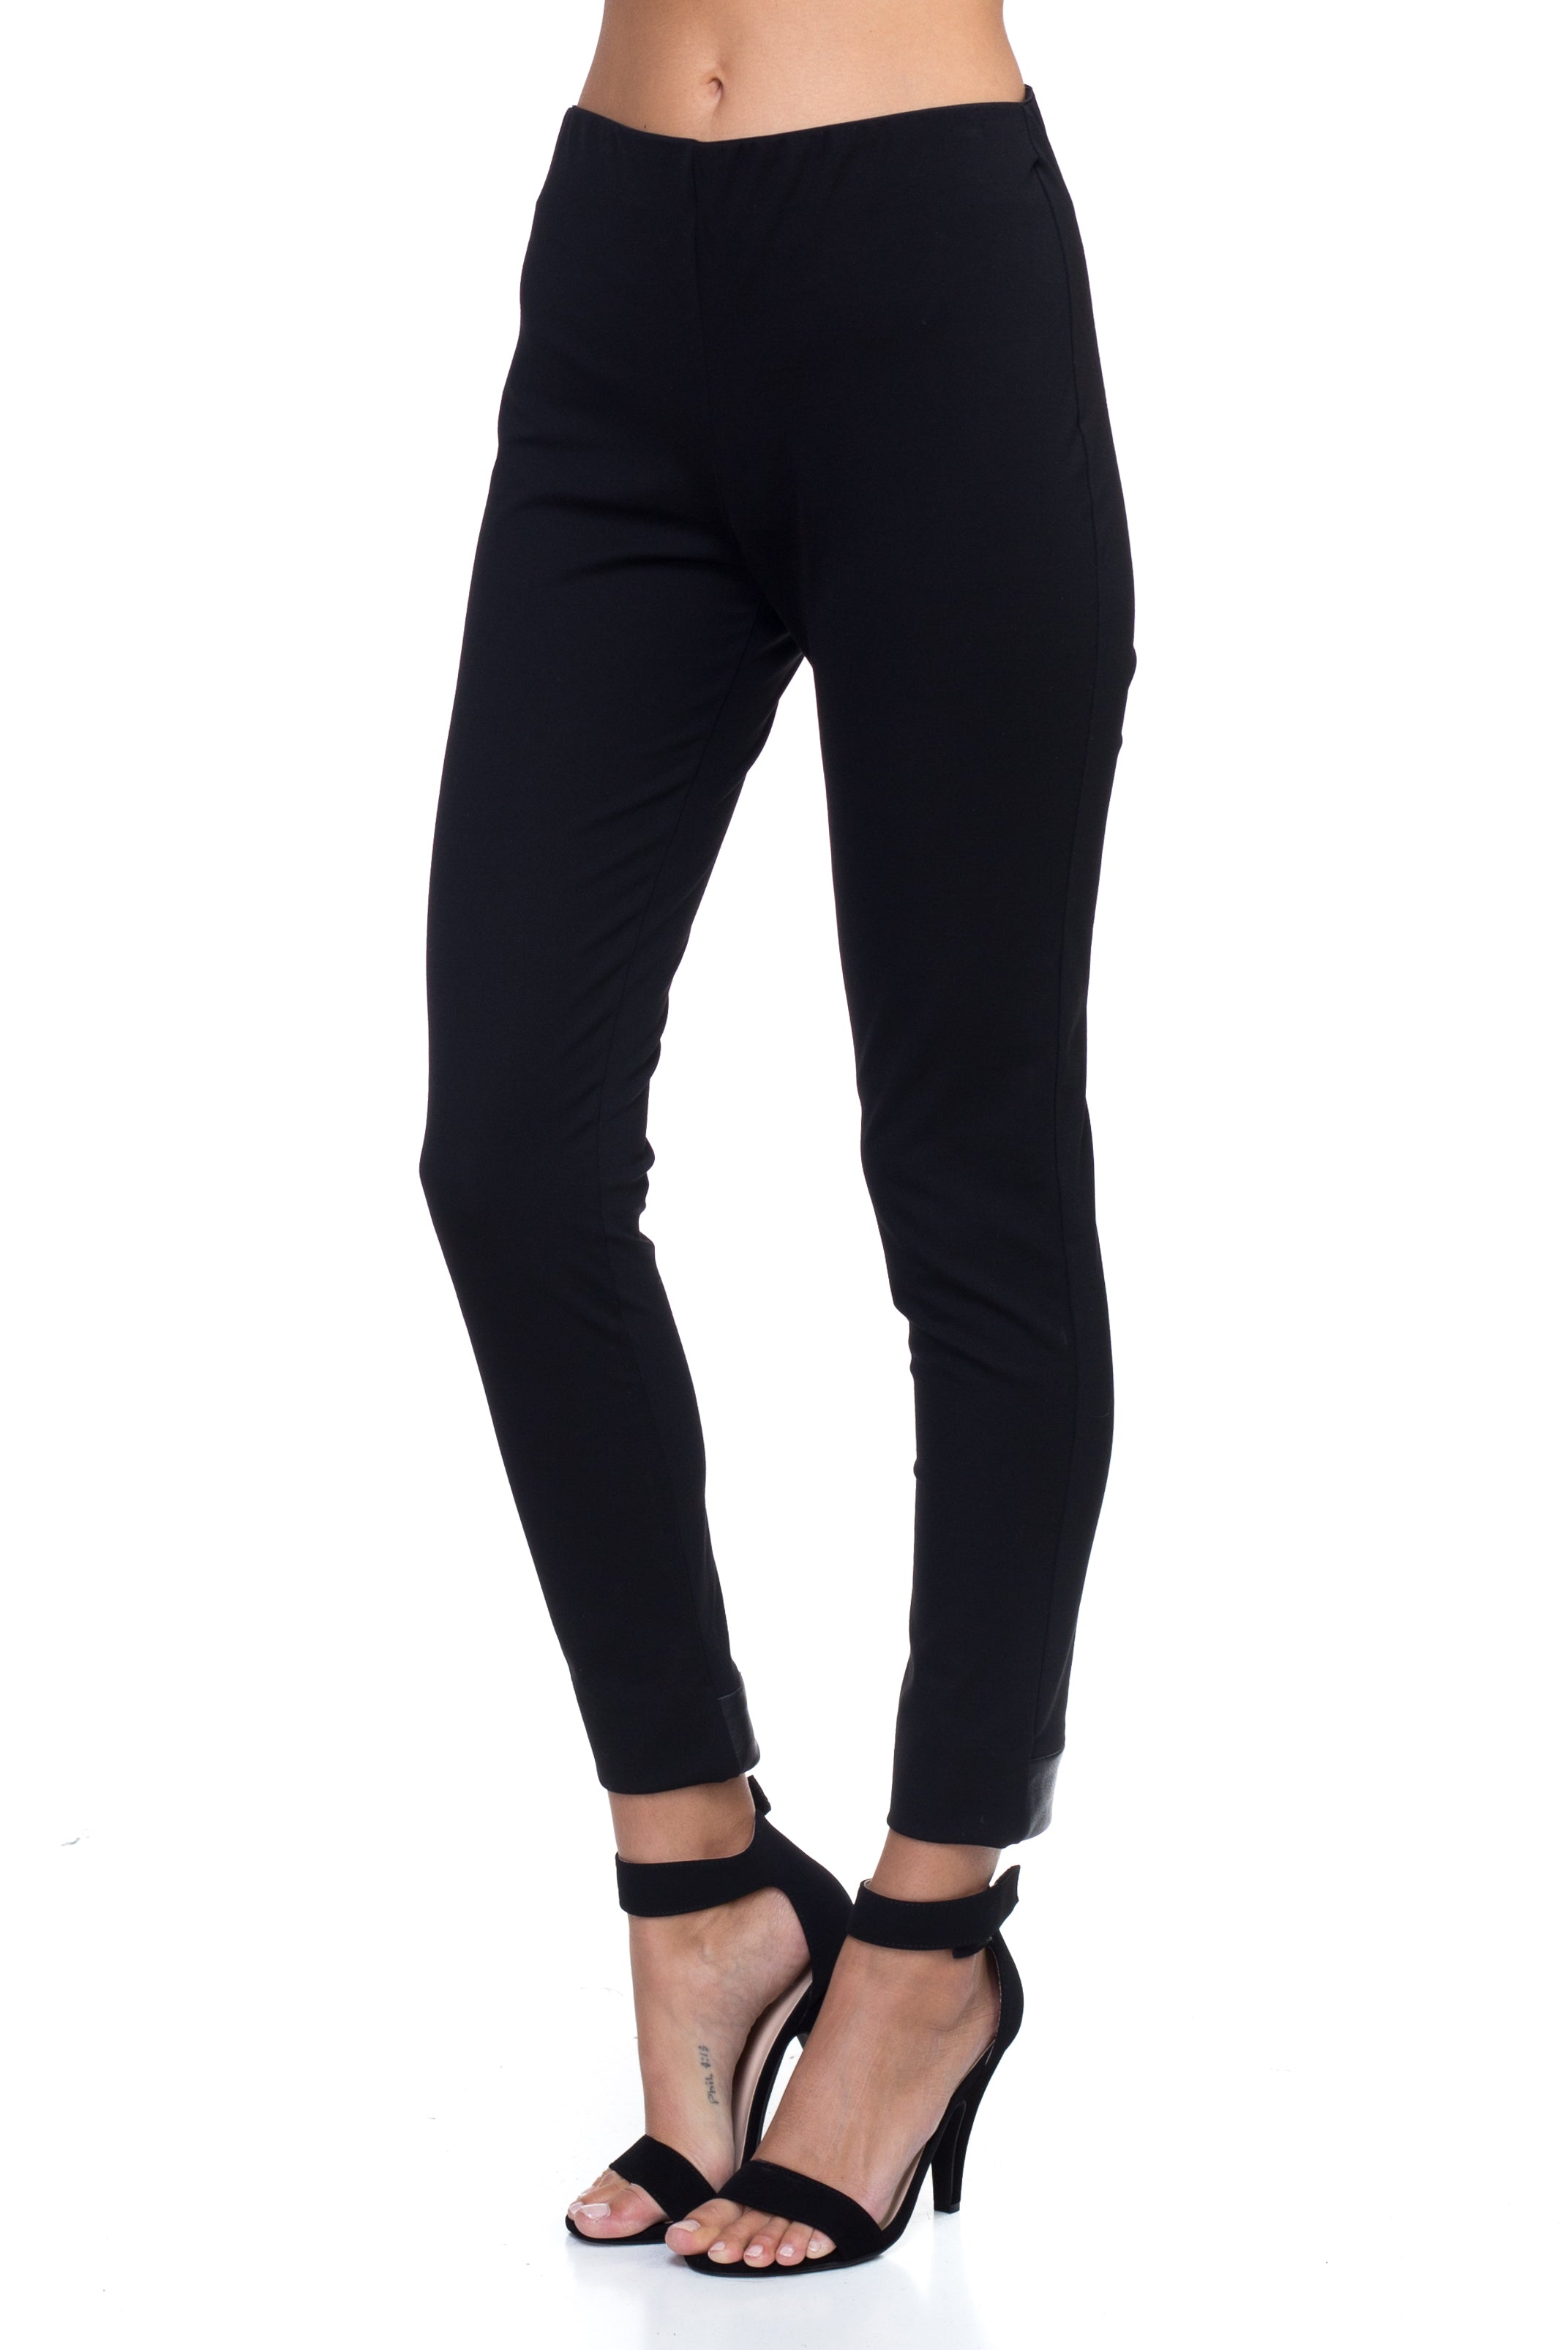 5a545916add3a Heidi - Black Formal Fitting Leggings – KAREN FALCO